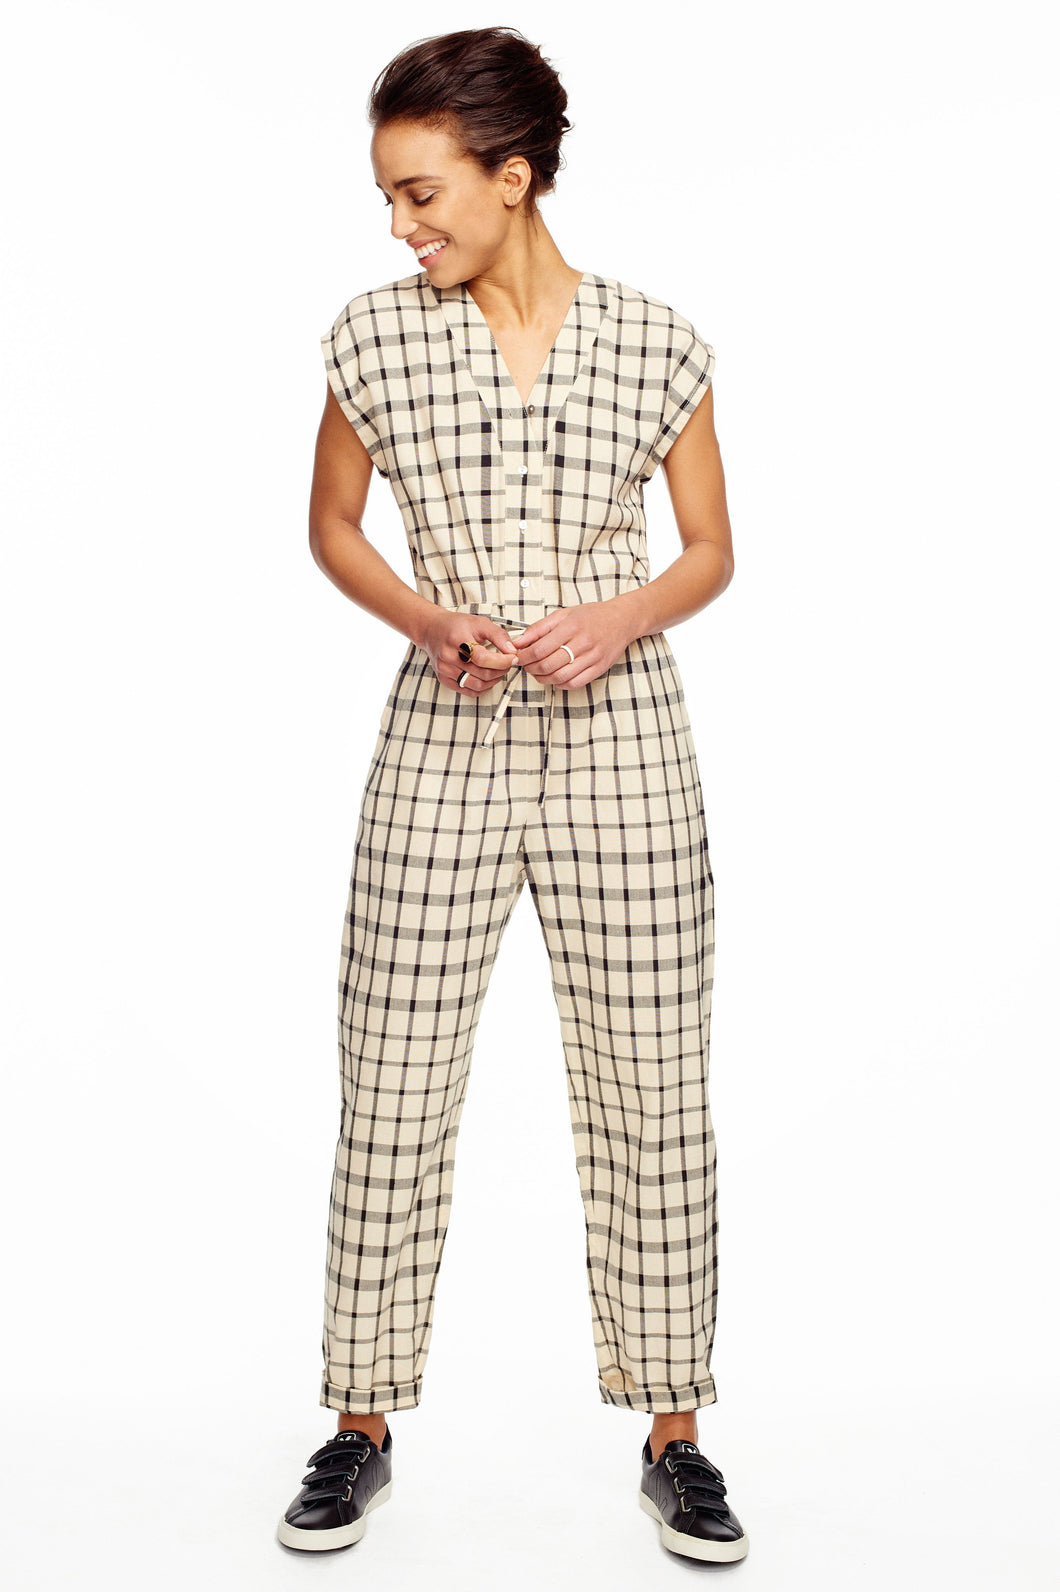 Accra Imprint Jumpsuit